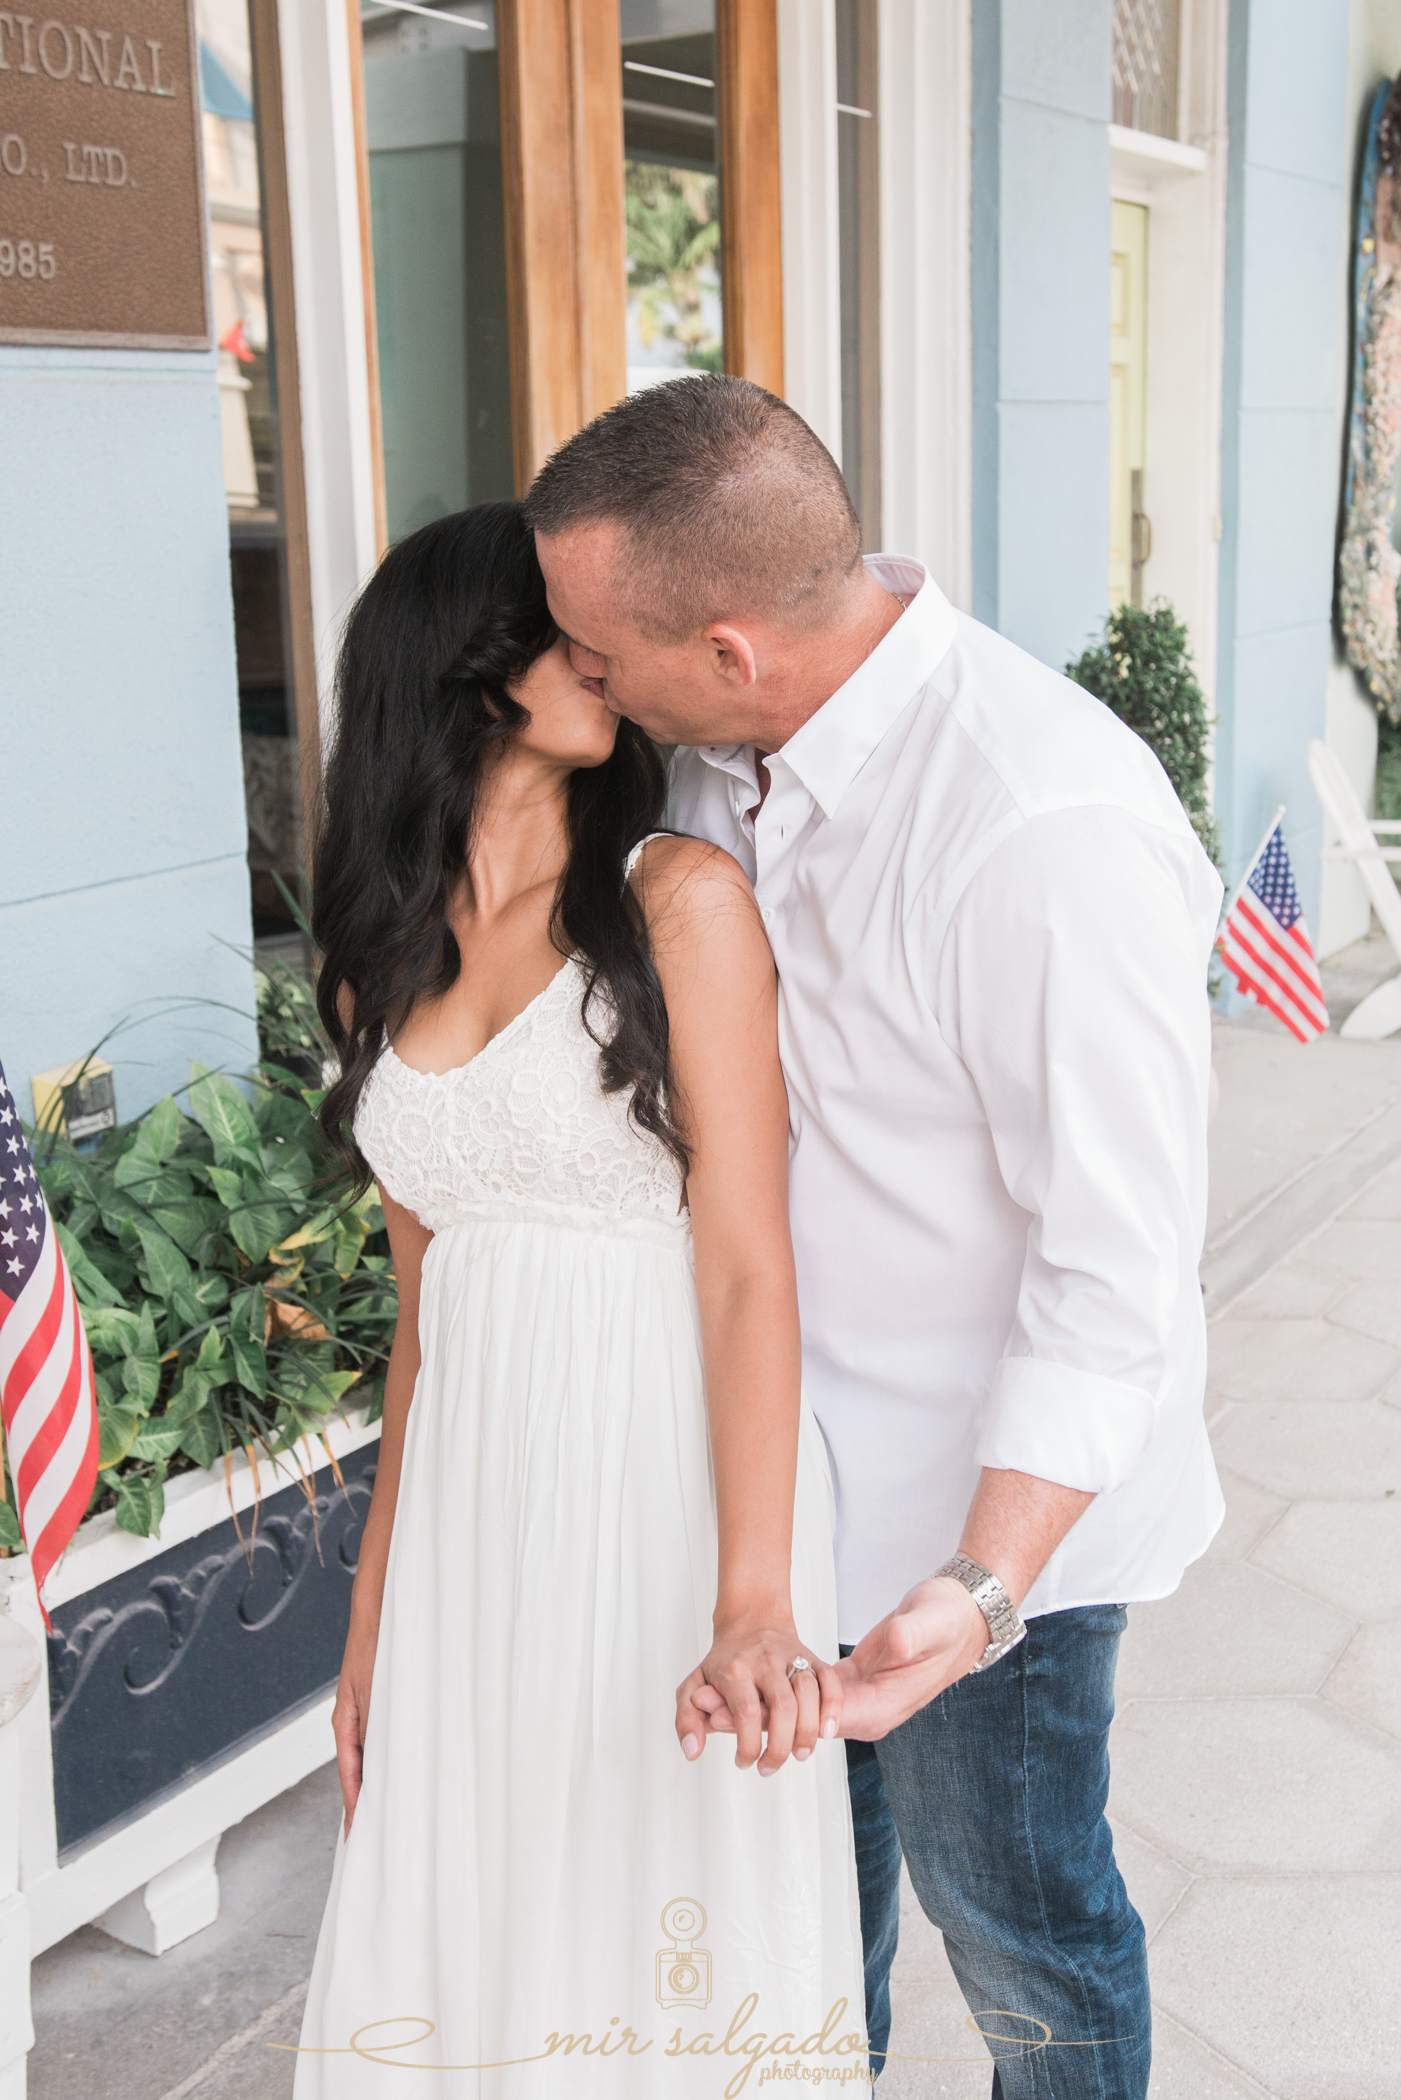 candid-kissing-engagement-photoshoot, engagement-kissing-pictures, tampa-wedding-photographer